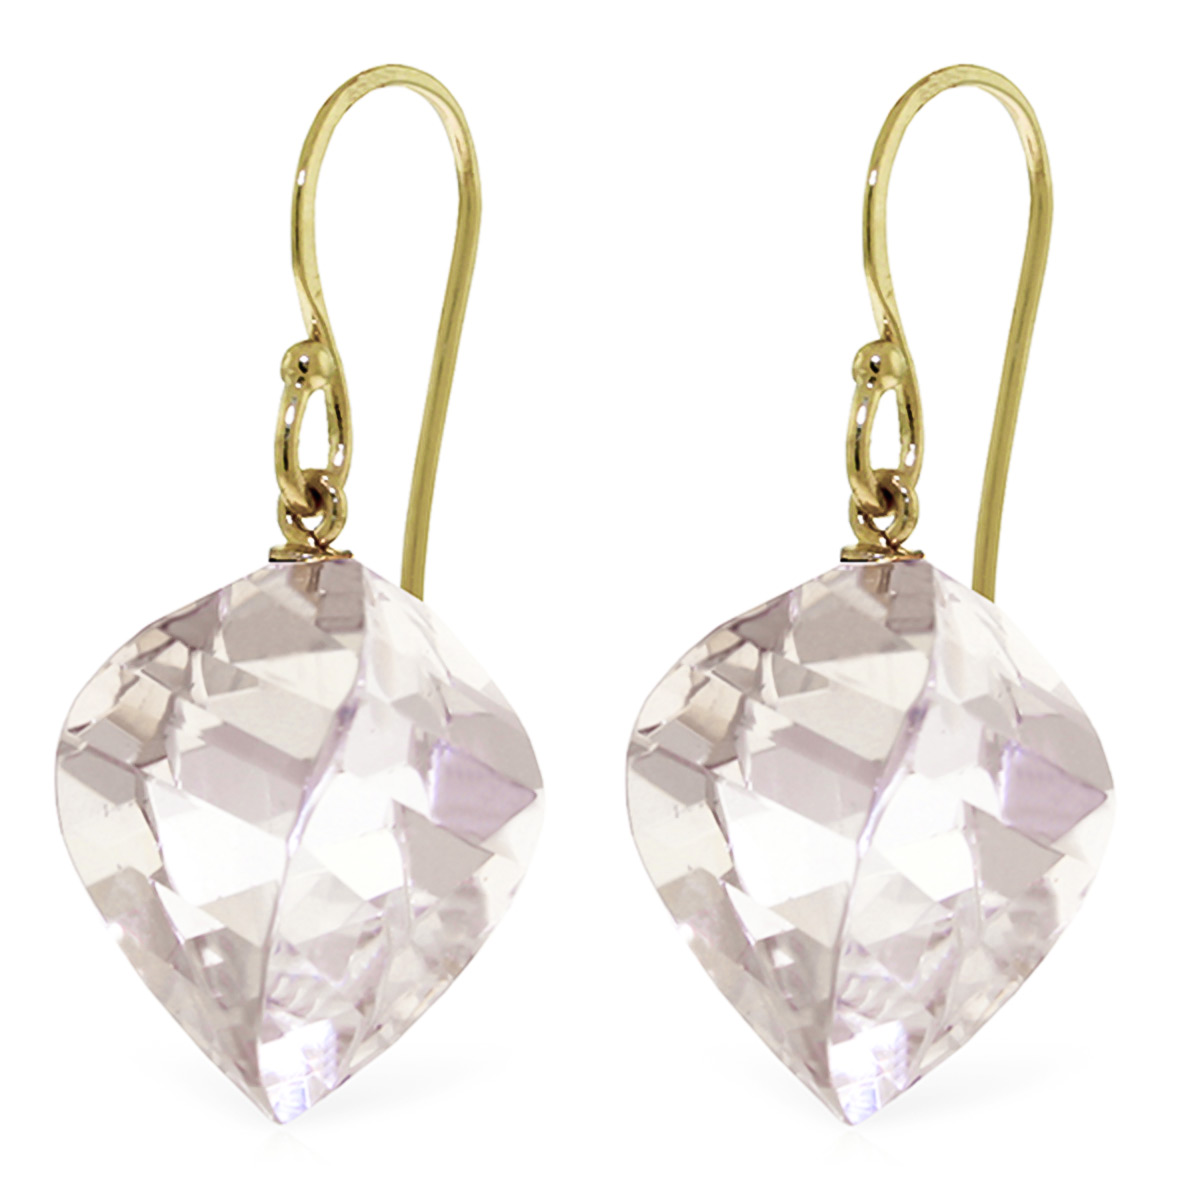 White Topaz Spiral Briolette Drop Earrings 25.6 ctw in 9ct Gold